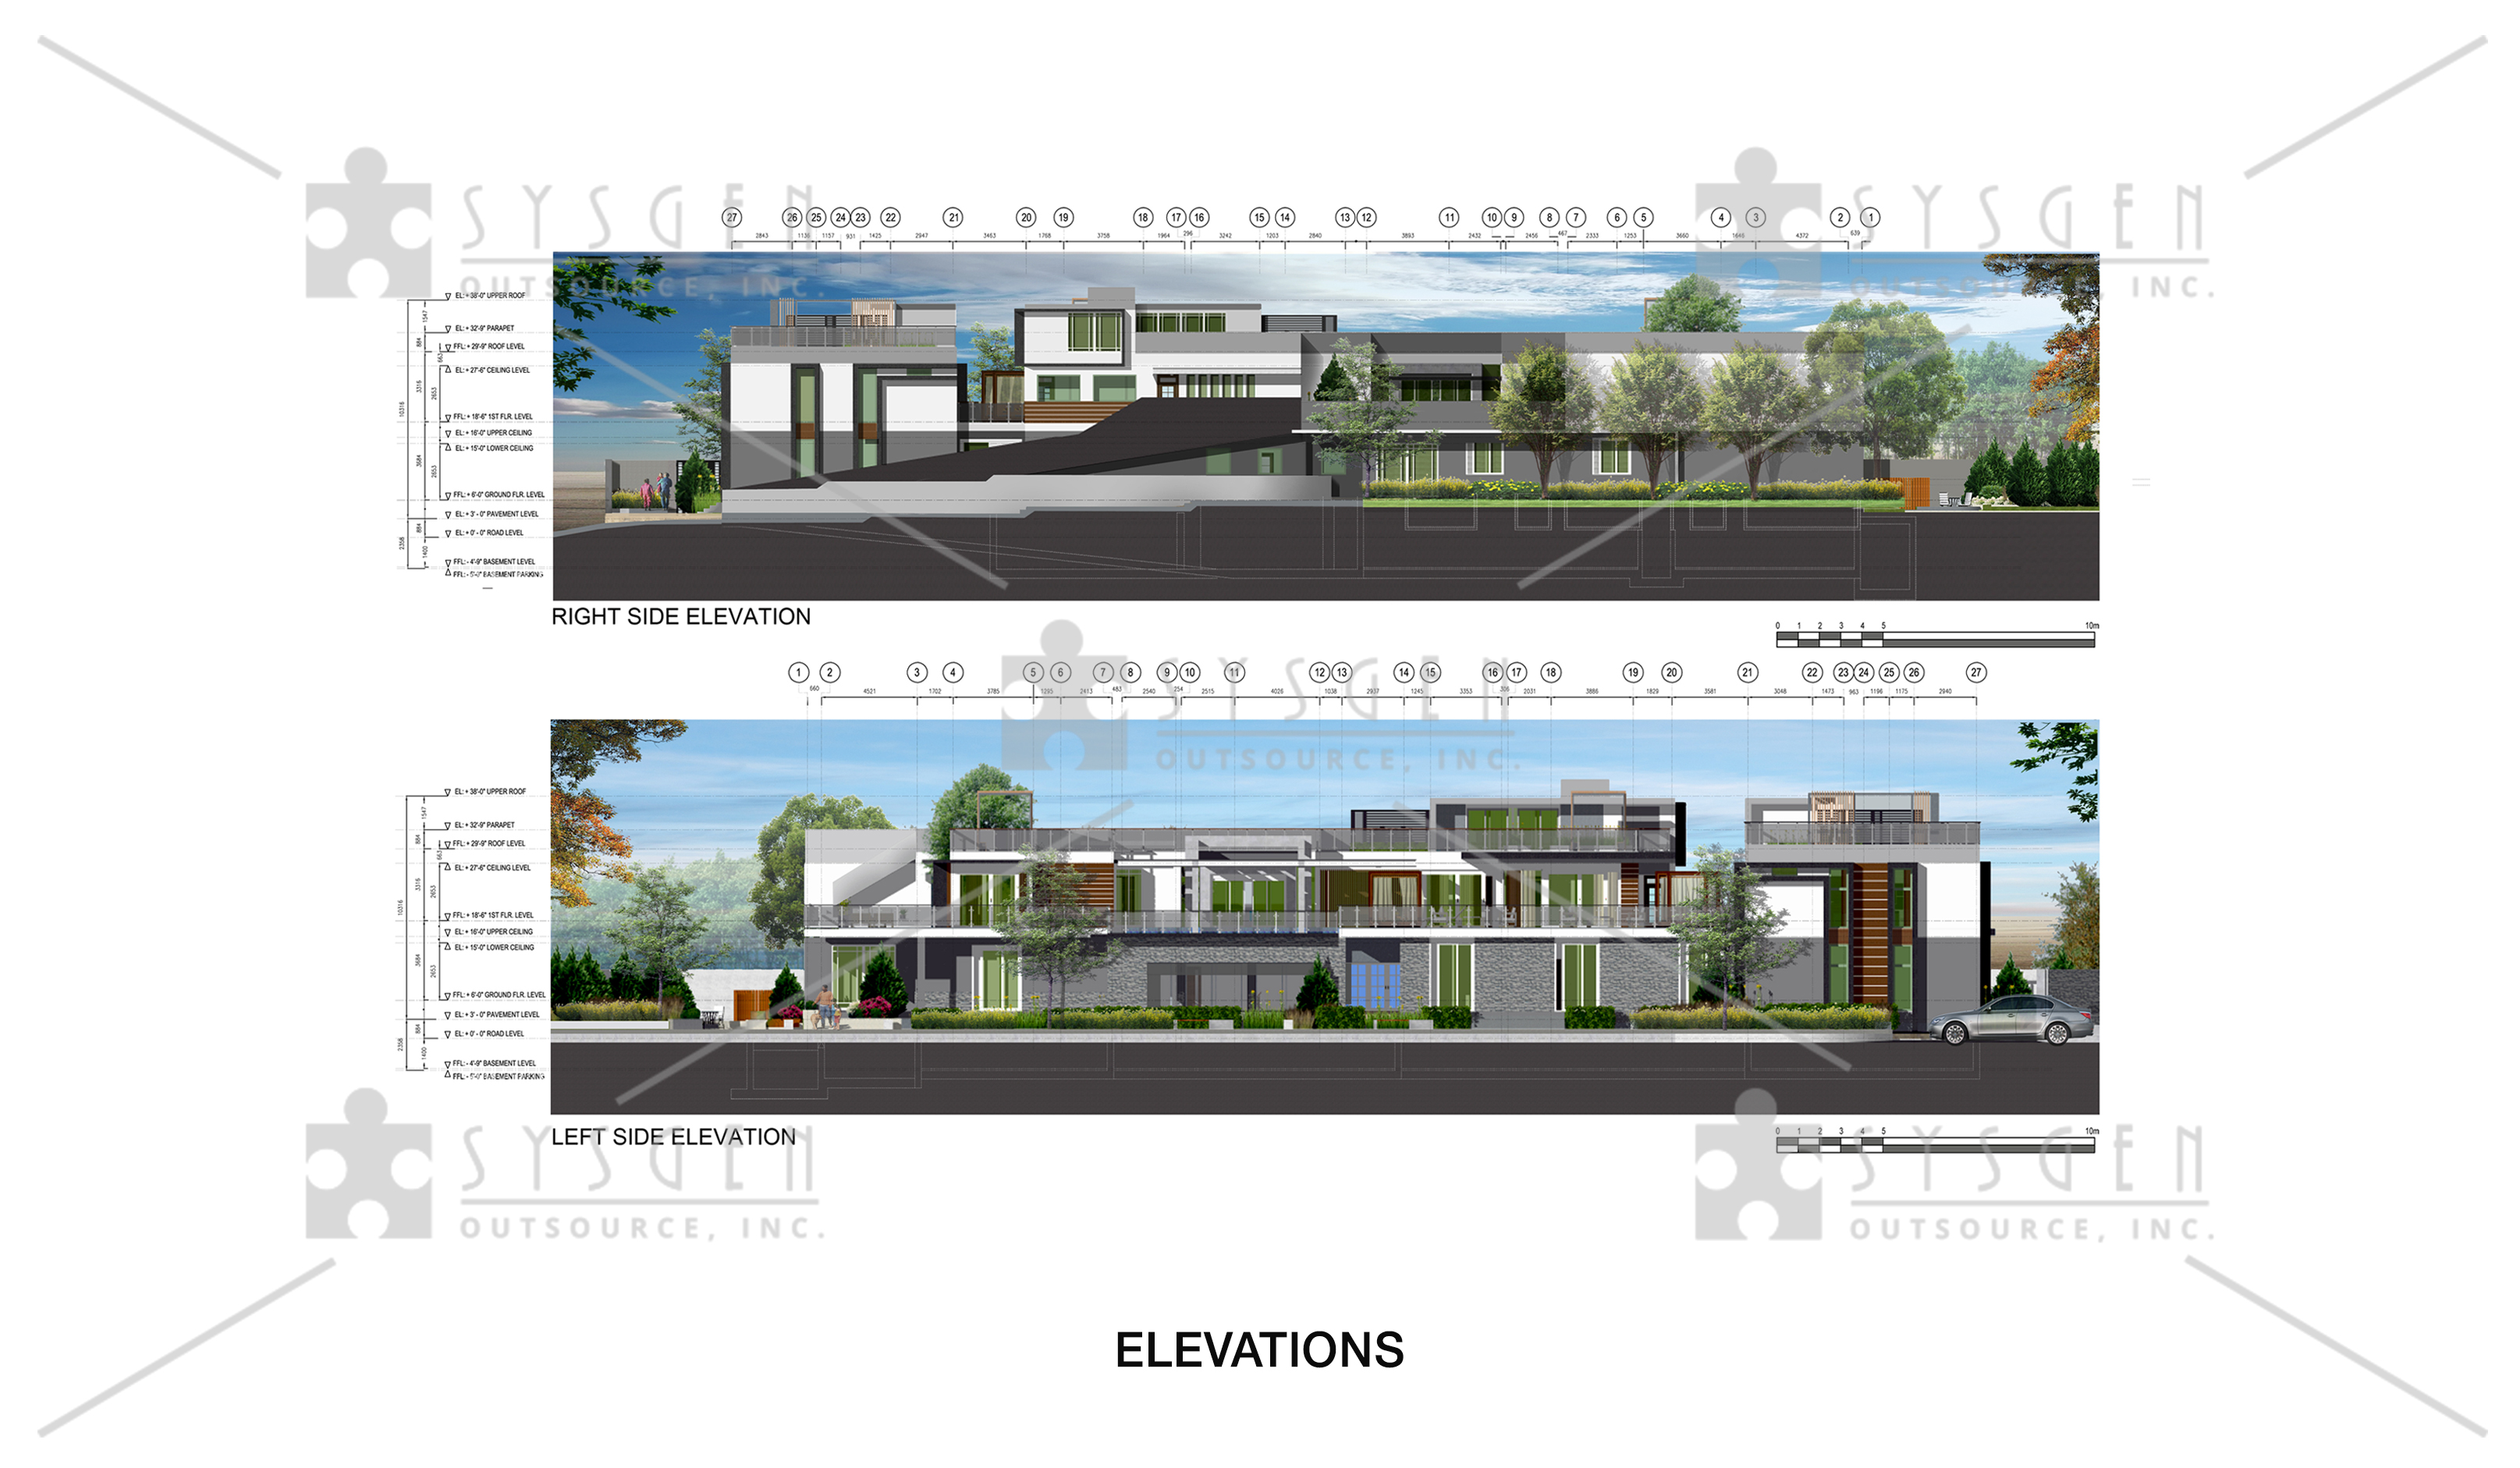 sysgen-outsource-cad-outsourcing-services-sketch-up-residential_villa-jj11